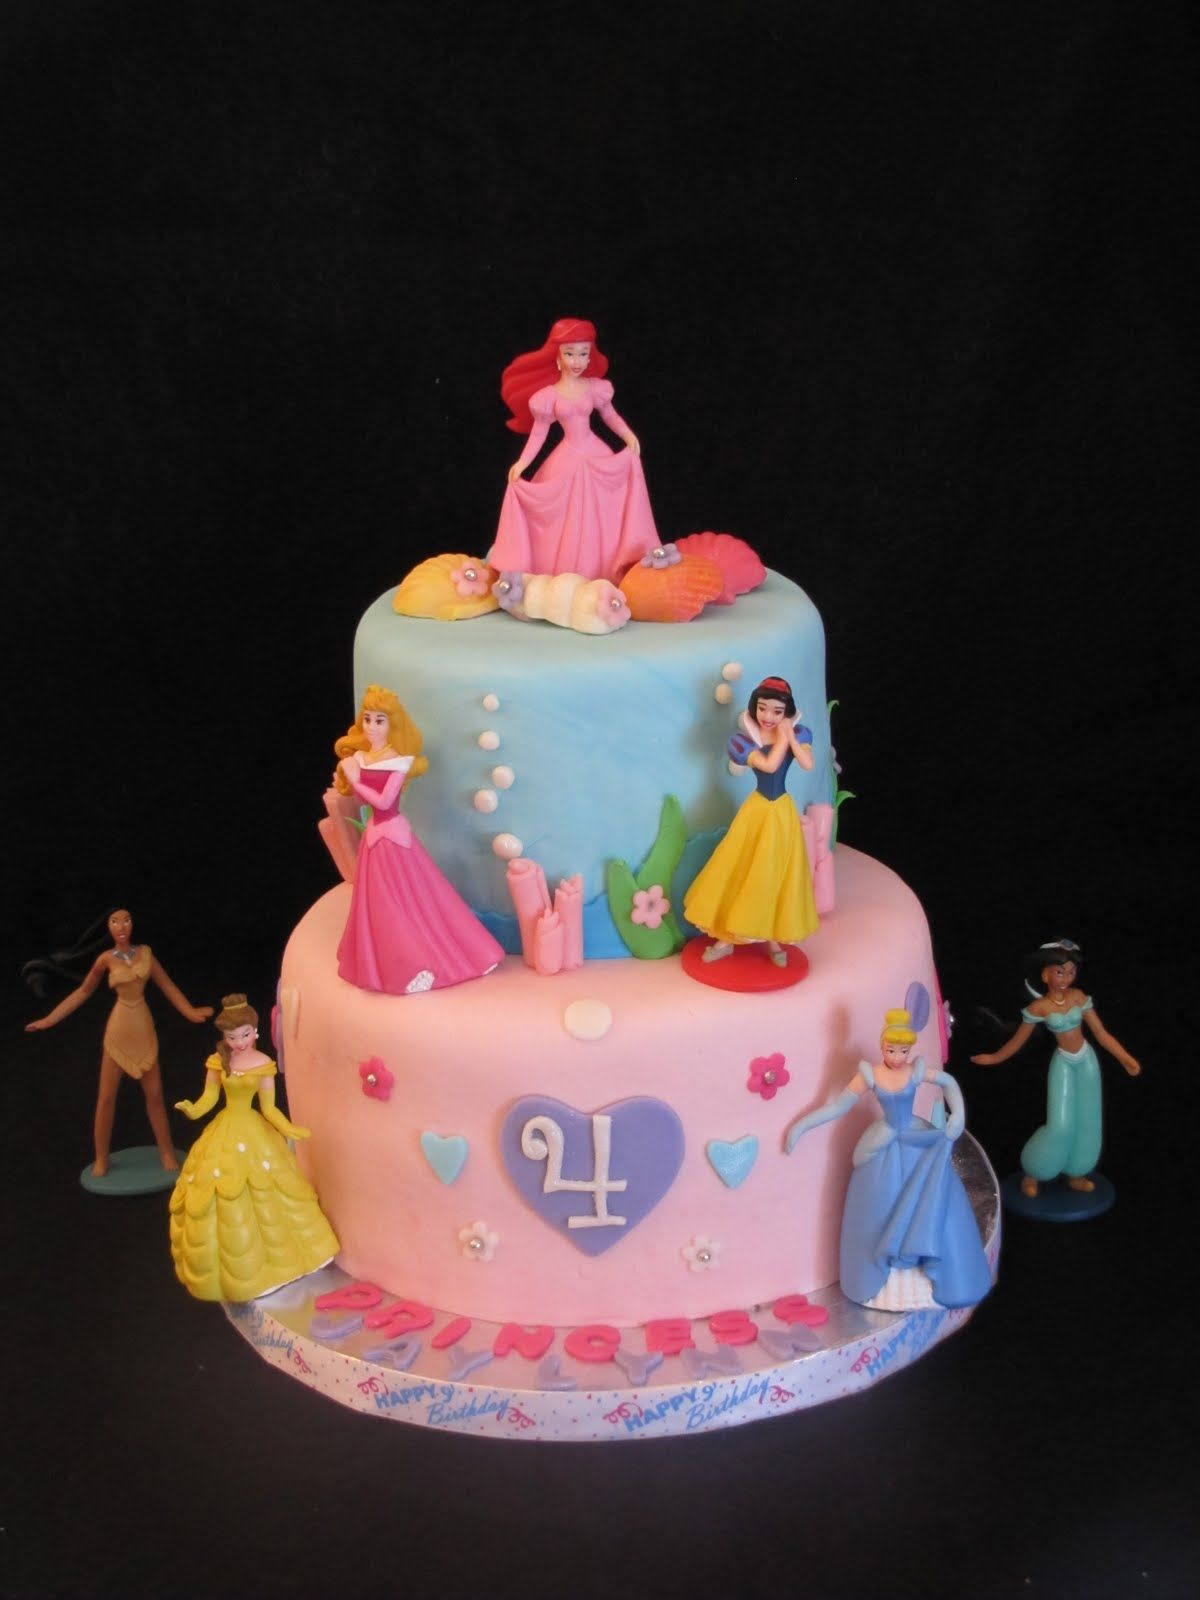 Pin by Candace Jakiel on cakes Pinterest Princess Ashley